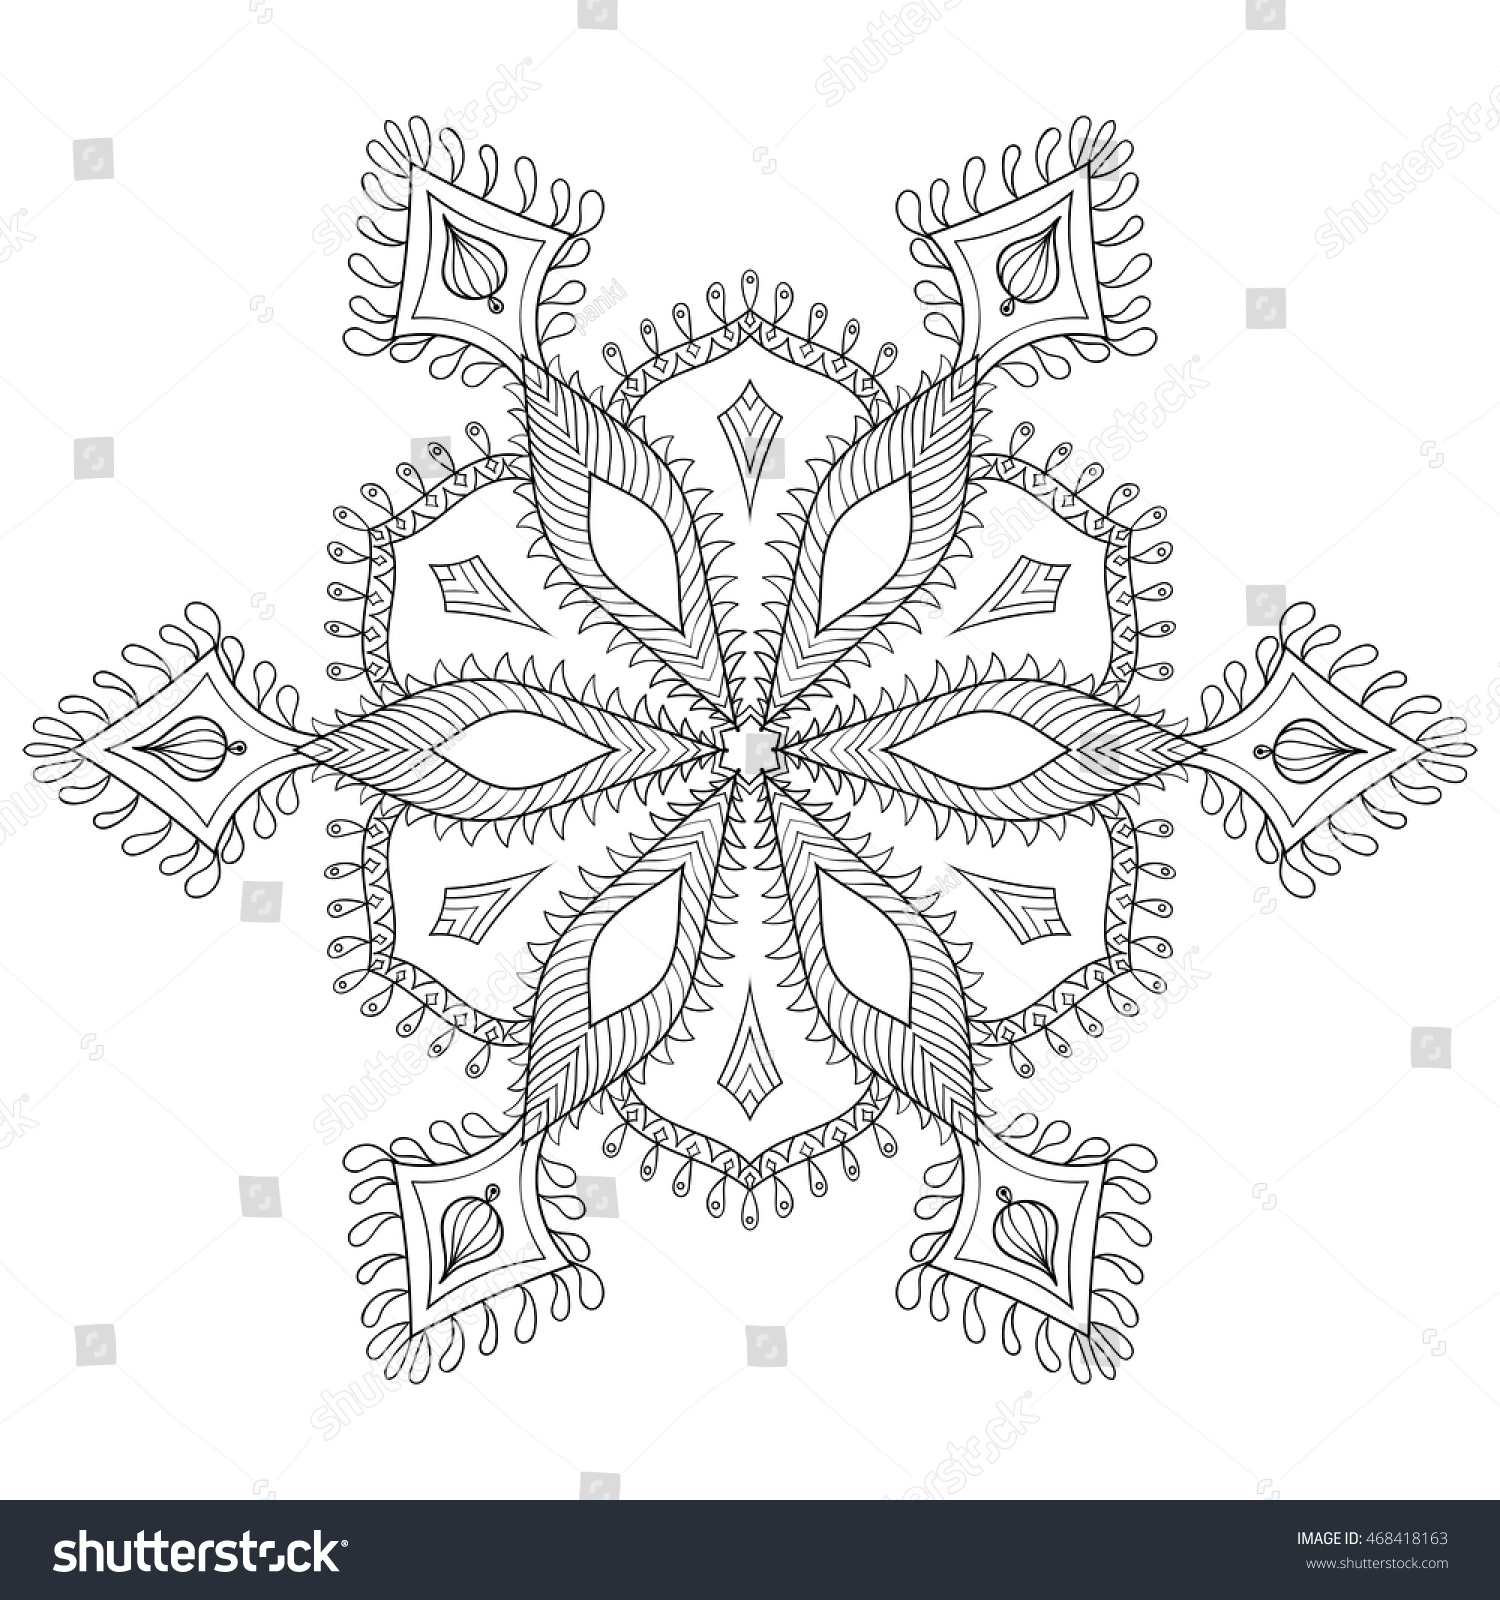 Zentangle Stylized Winter Snowflake Freehand Artistic Stock Vector ...